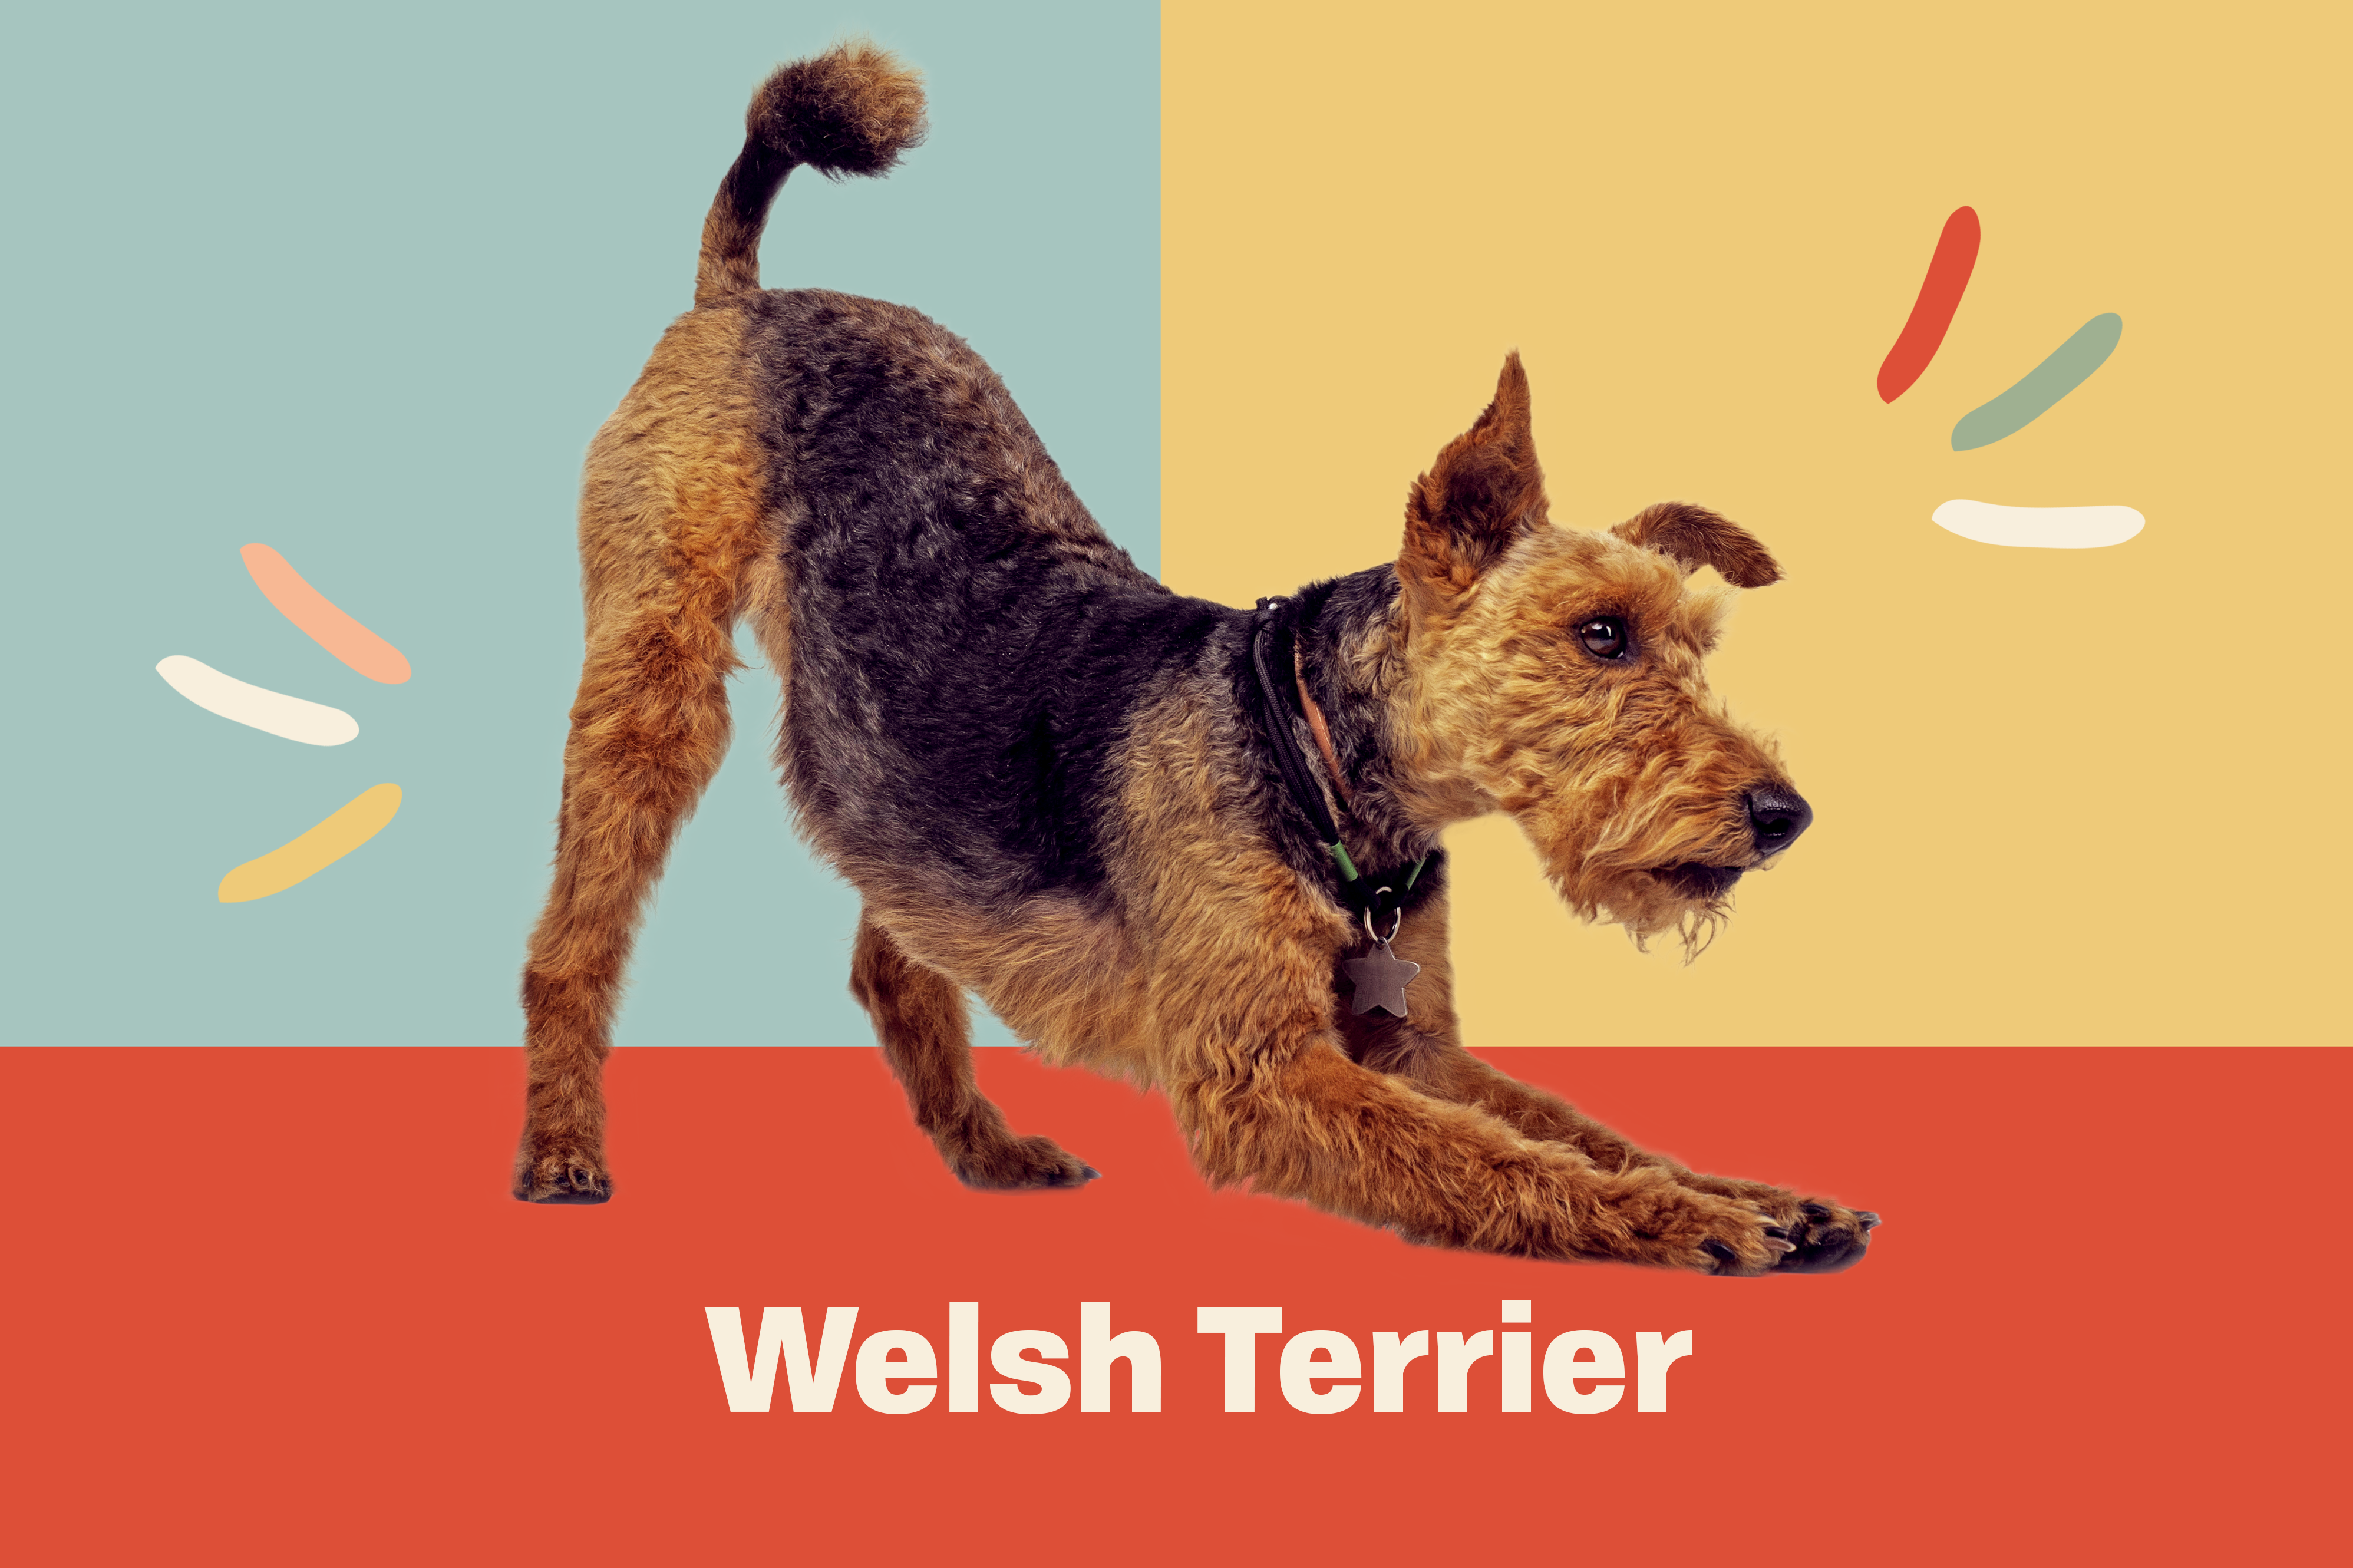 image of Welsh Terrier against breed profile treatment